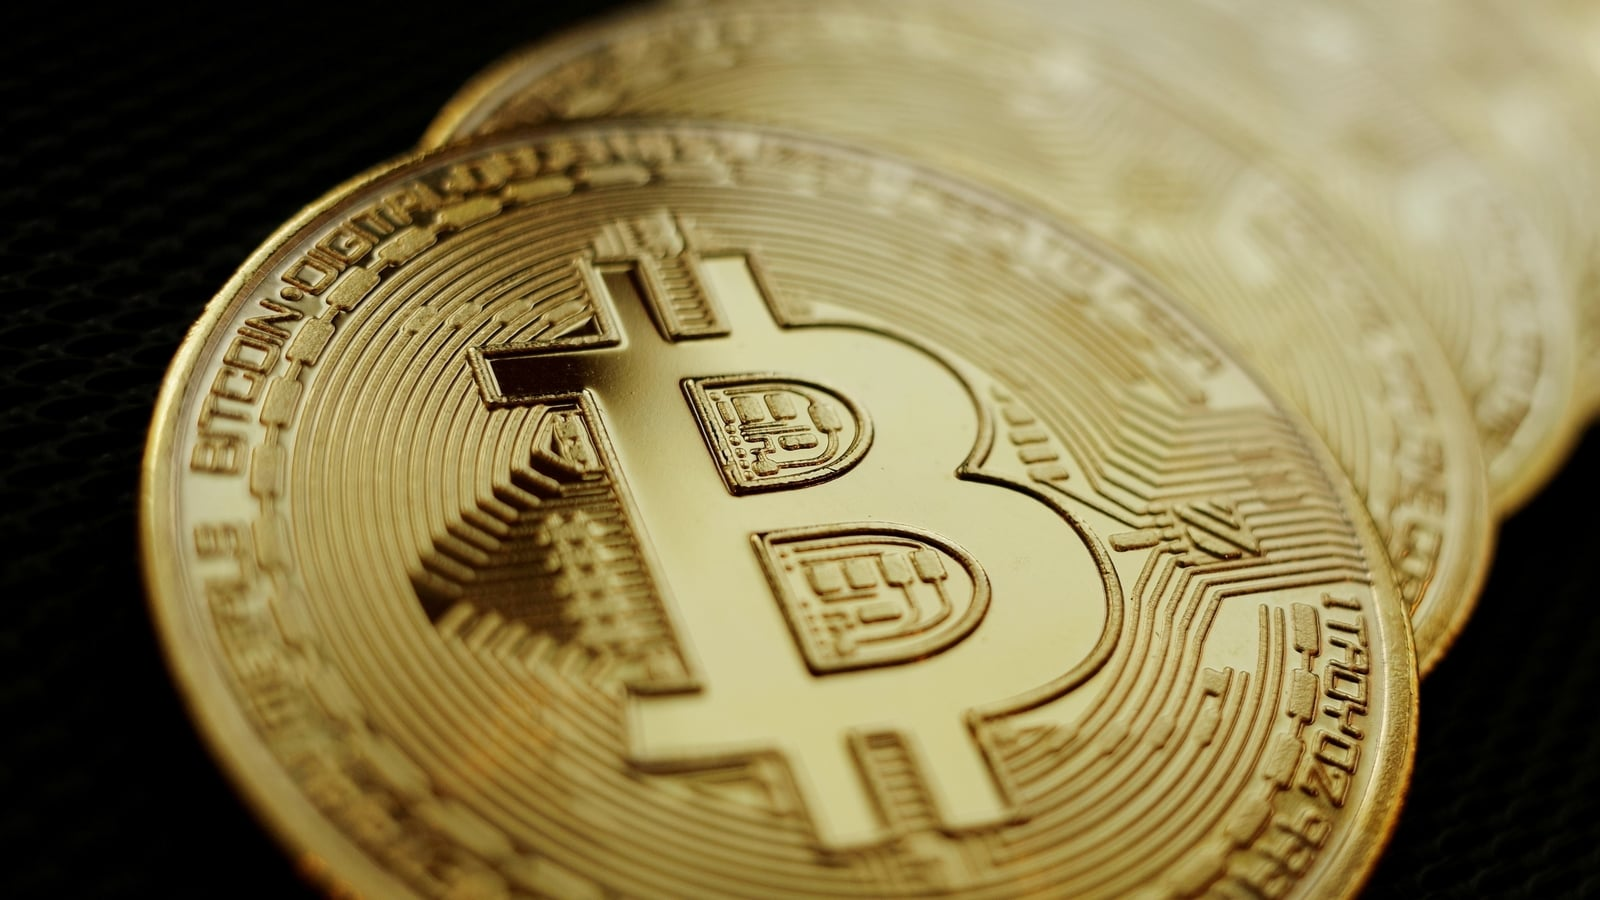 Bitcoin drops to around $40,000 after achieving highest levels since May